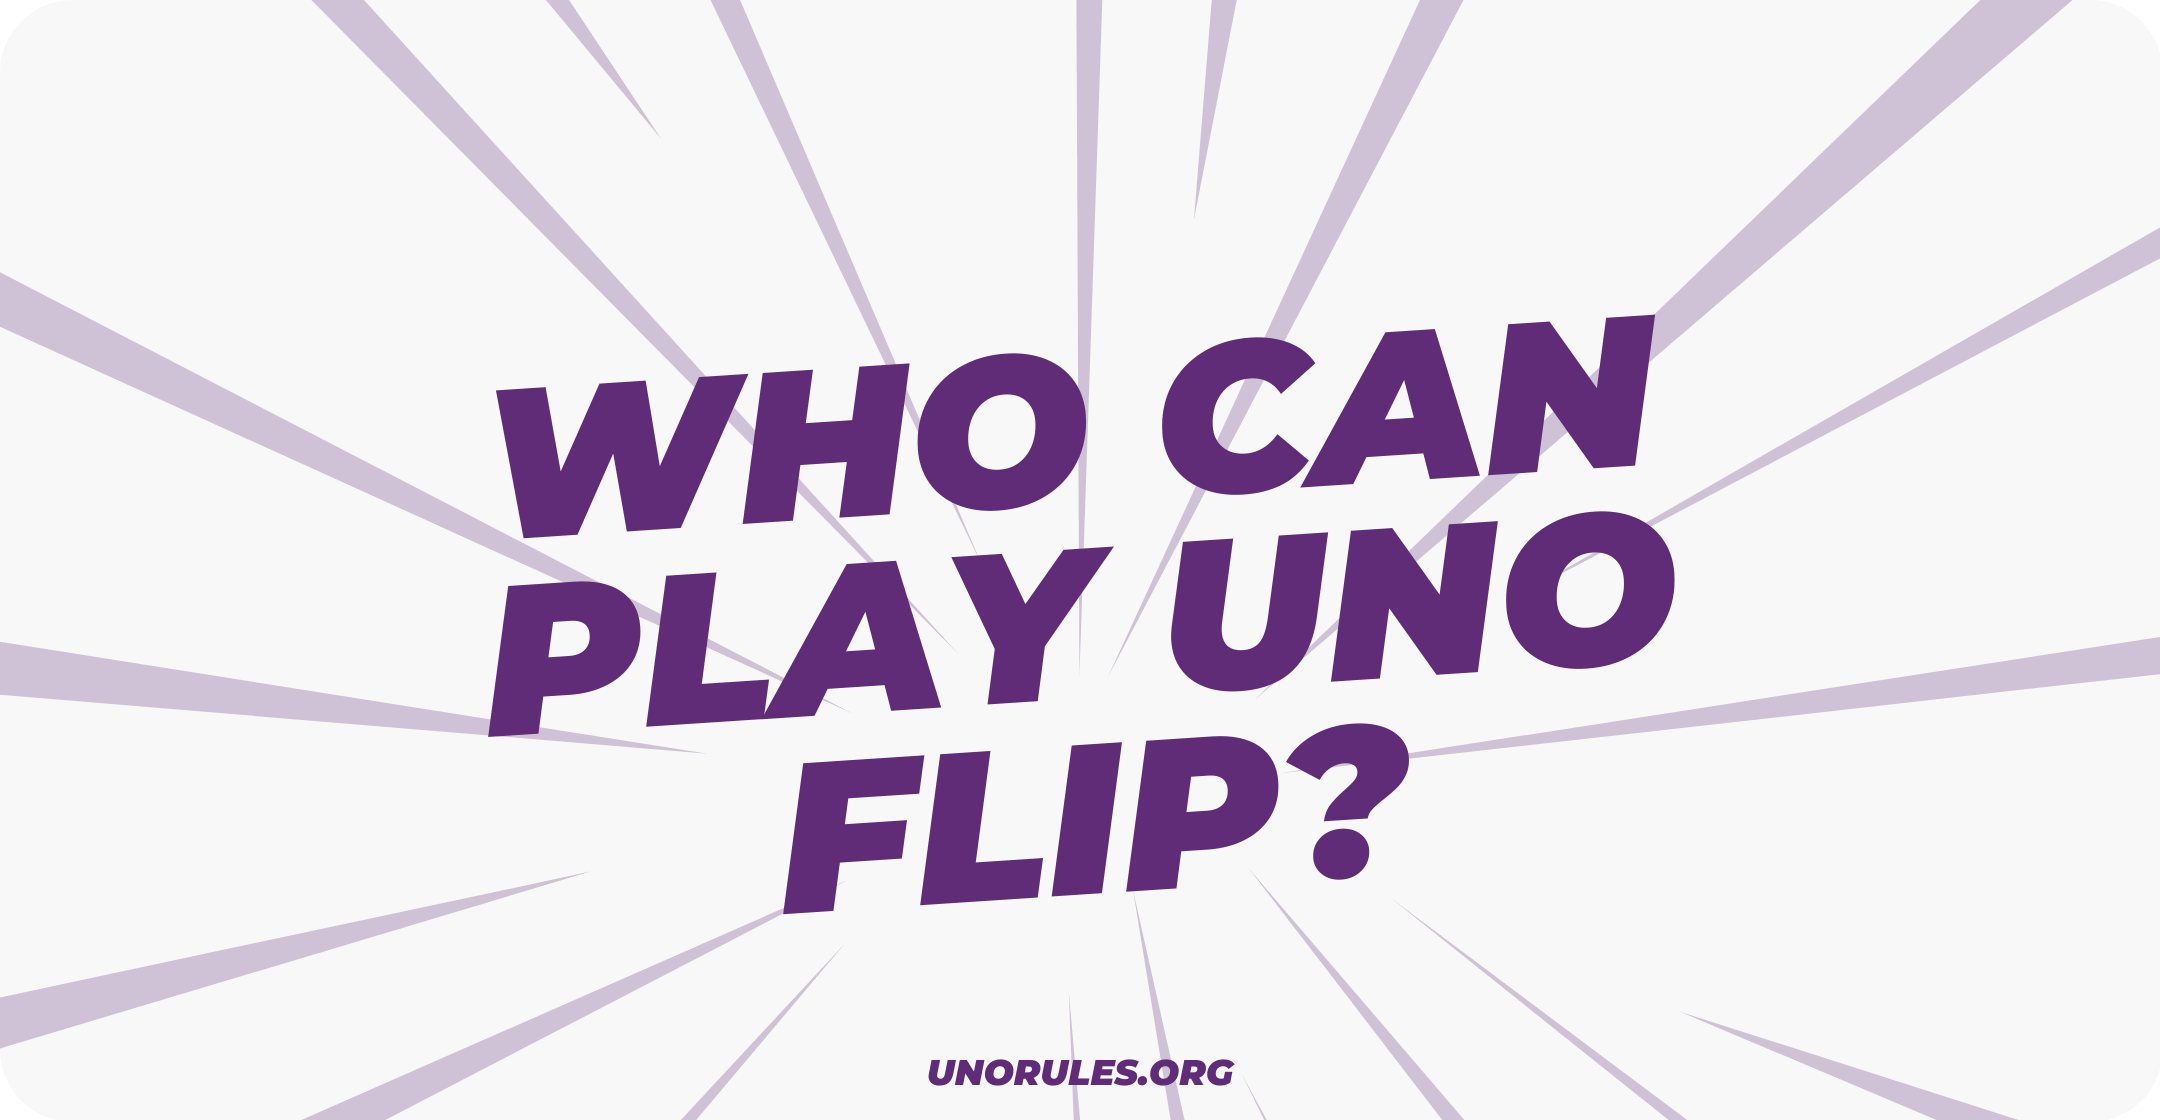 Who can play uno flip